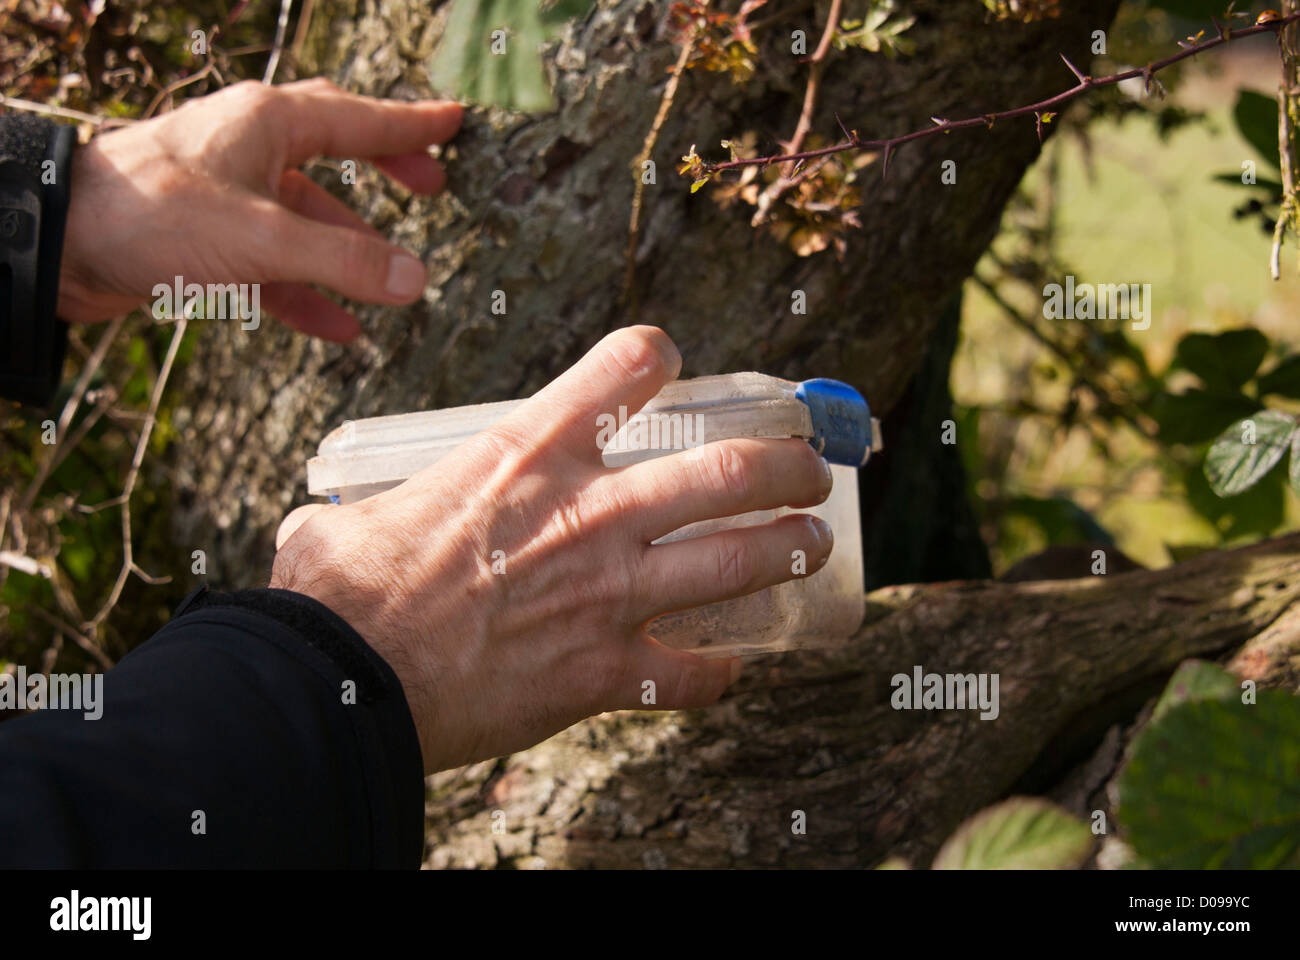 Finding a geocache box, Sheffield, South Yorkshire, England. Stock Photo